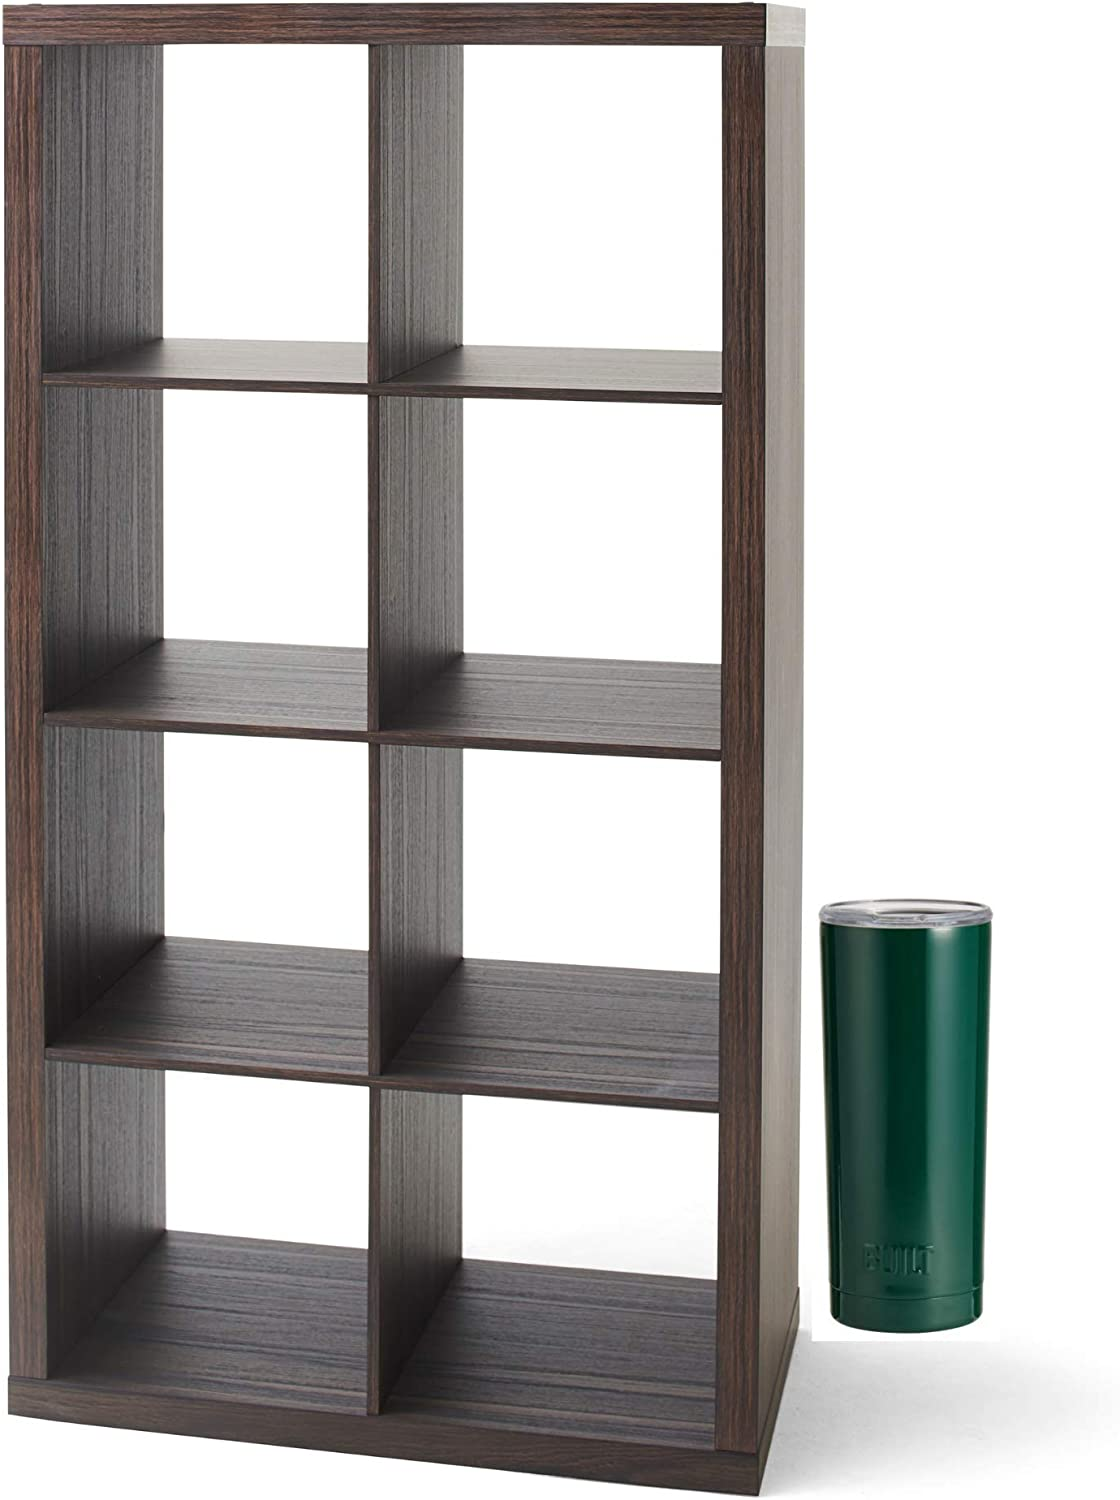 Textured White The Sleek Style of Better Homes and Gardens Home Office Furniture 8-Cube Organizer Storage Bookcase and Insulated Double Wall Tumbler Bundle